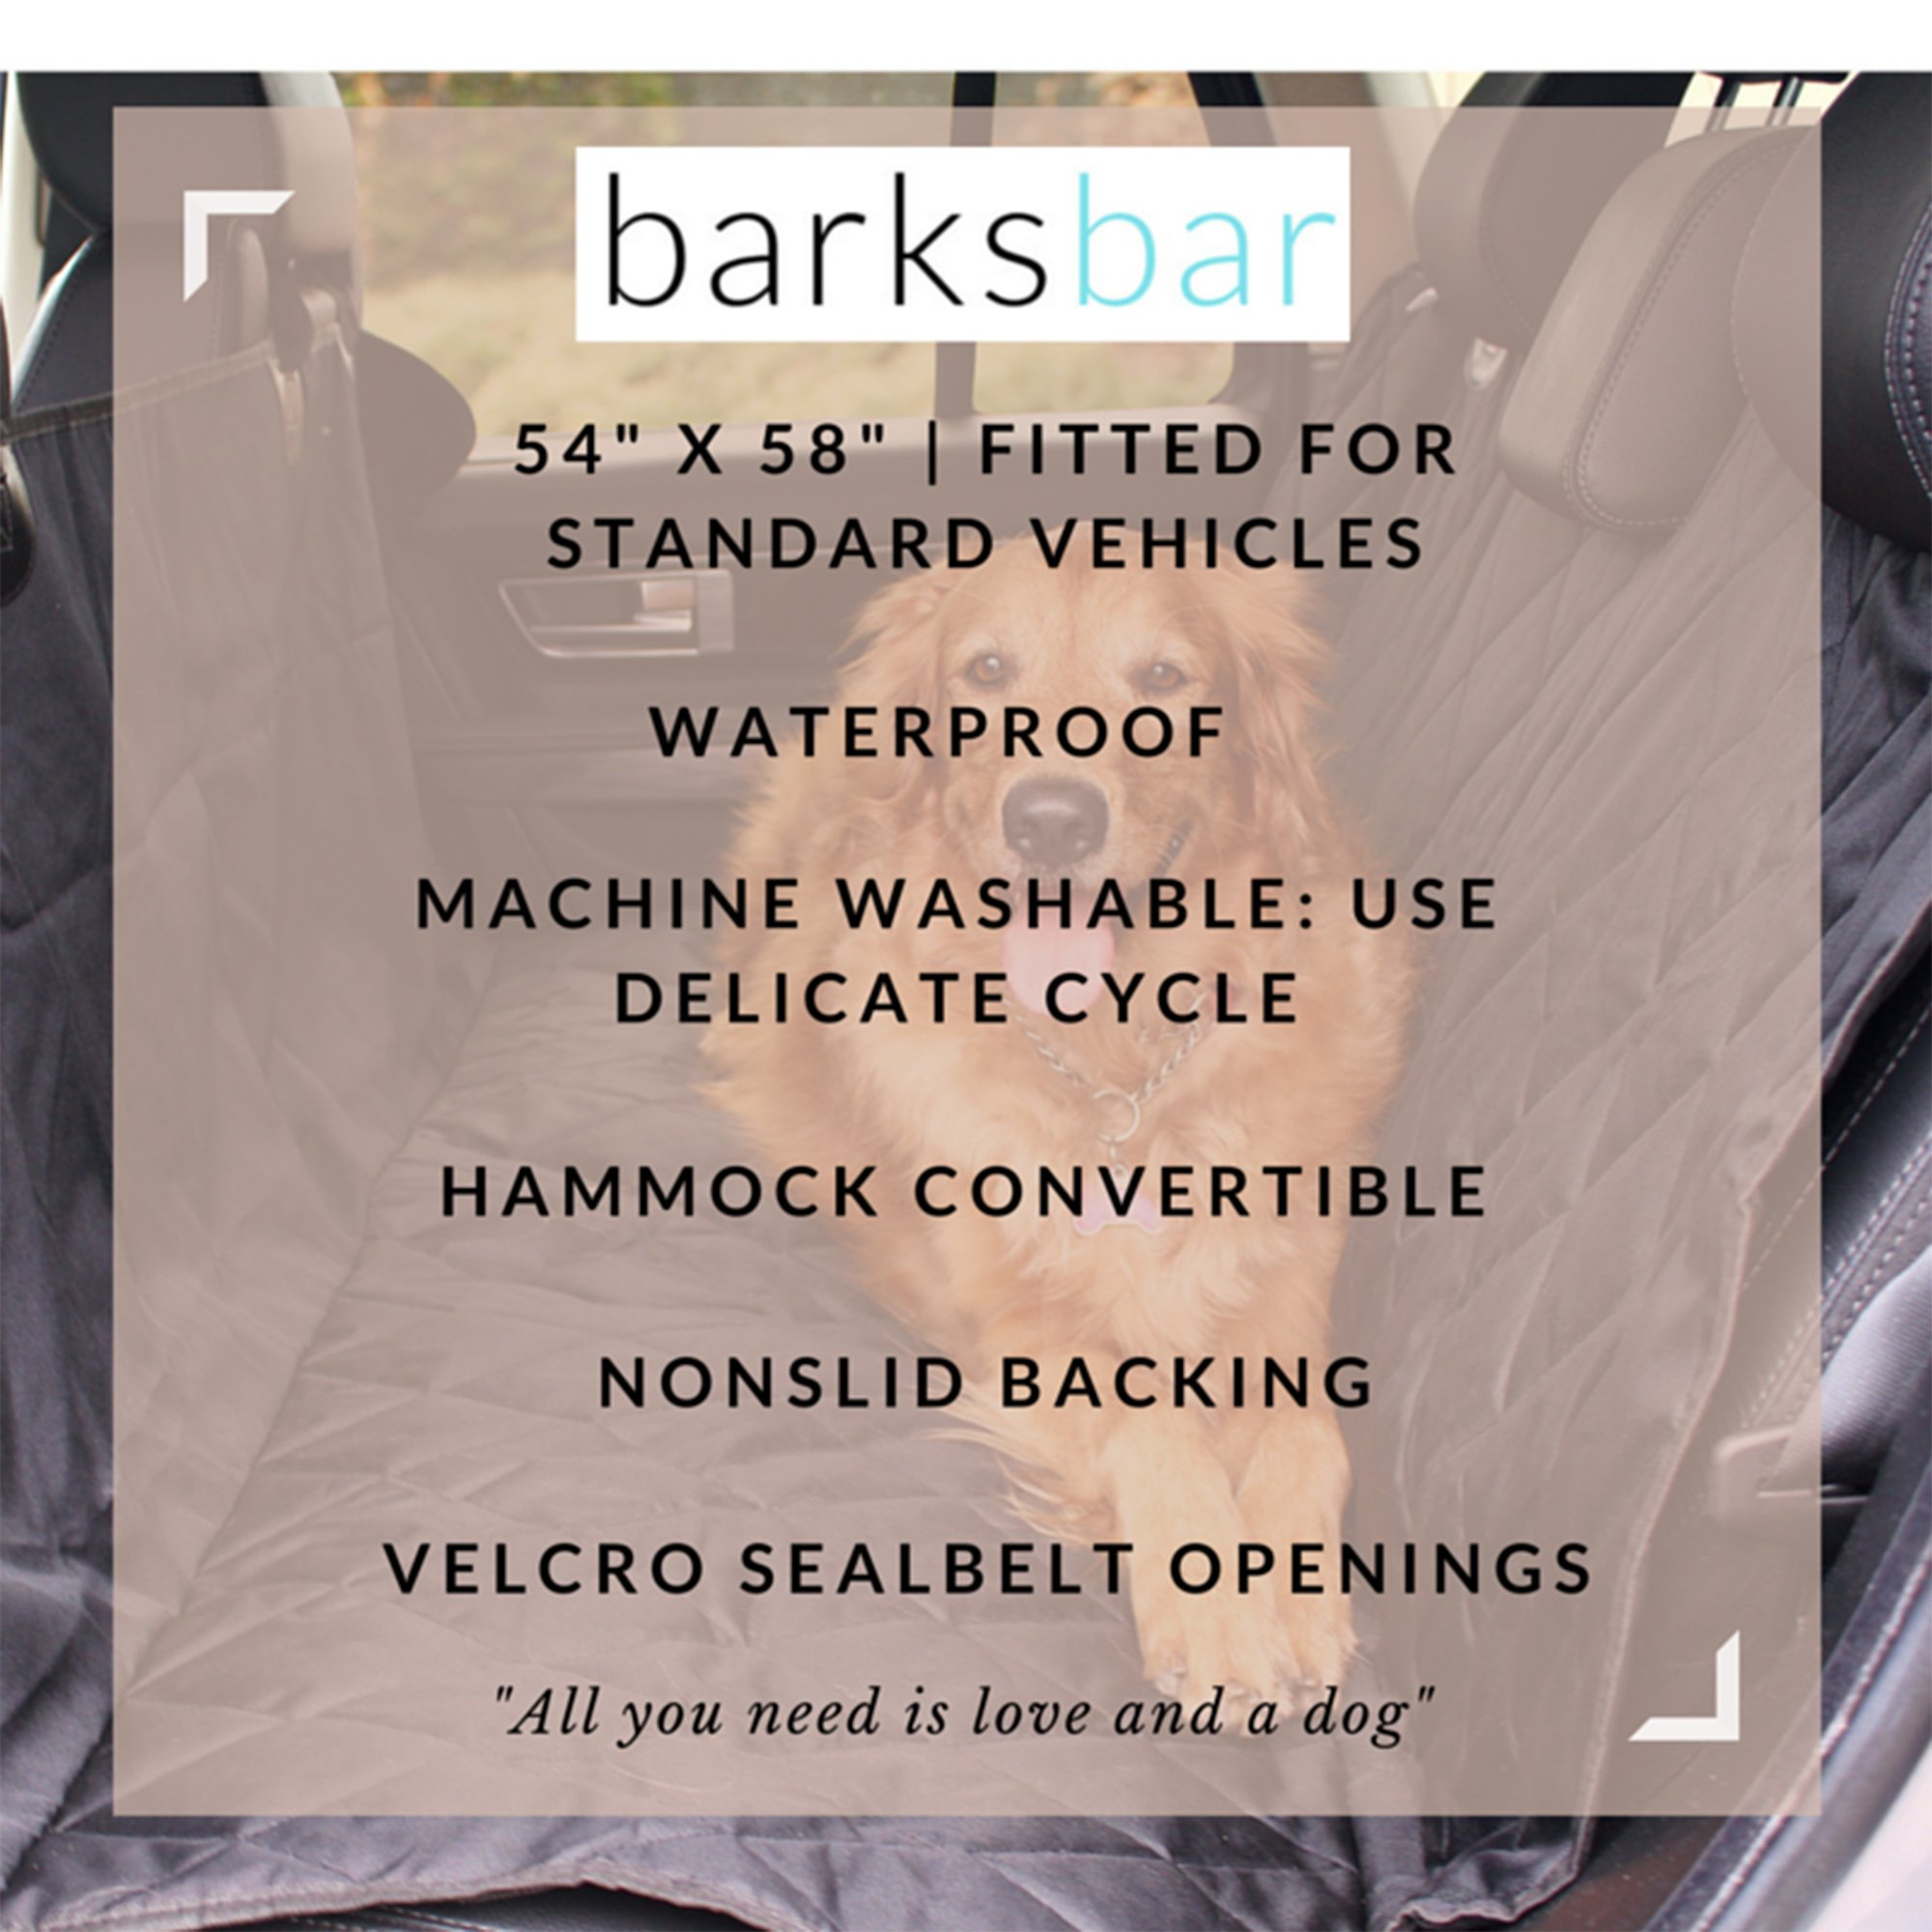 BarksBar Pet Car Seat Cover with Seat Anchors for Cars, Trucks and SUV's, Water Proof and Non-Slip Backing Regular, Black by BarksBar (Image #6)